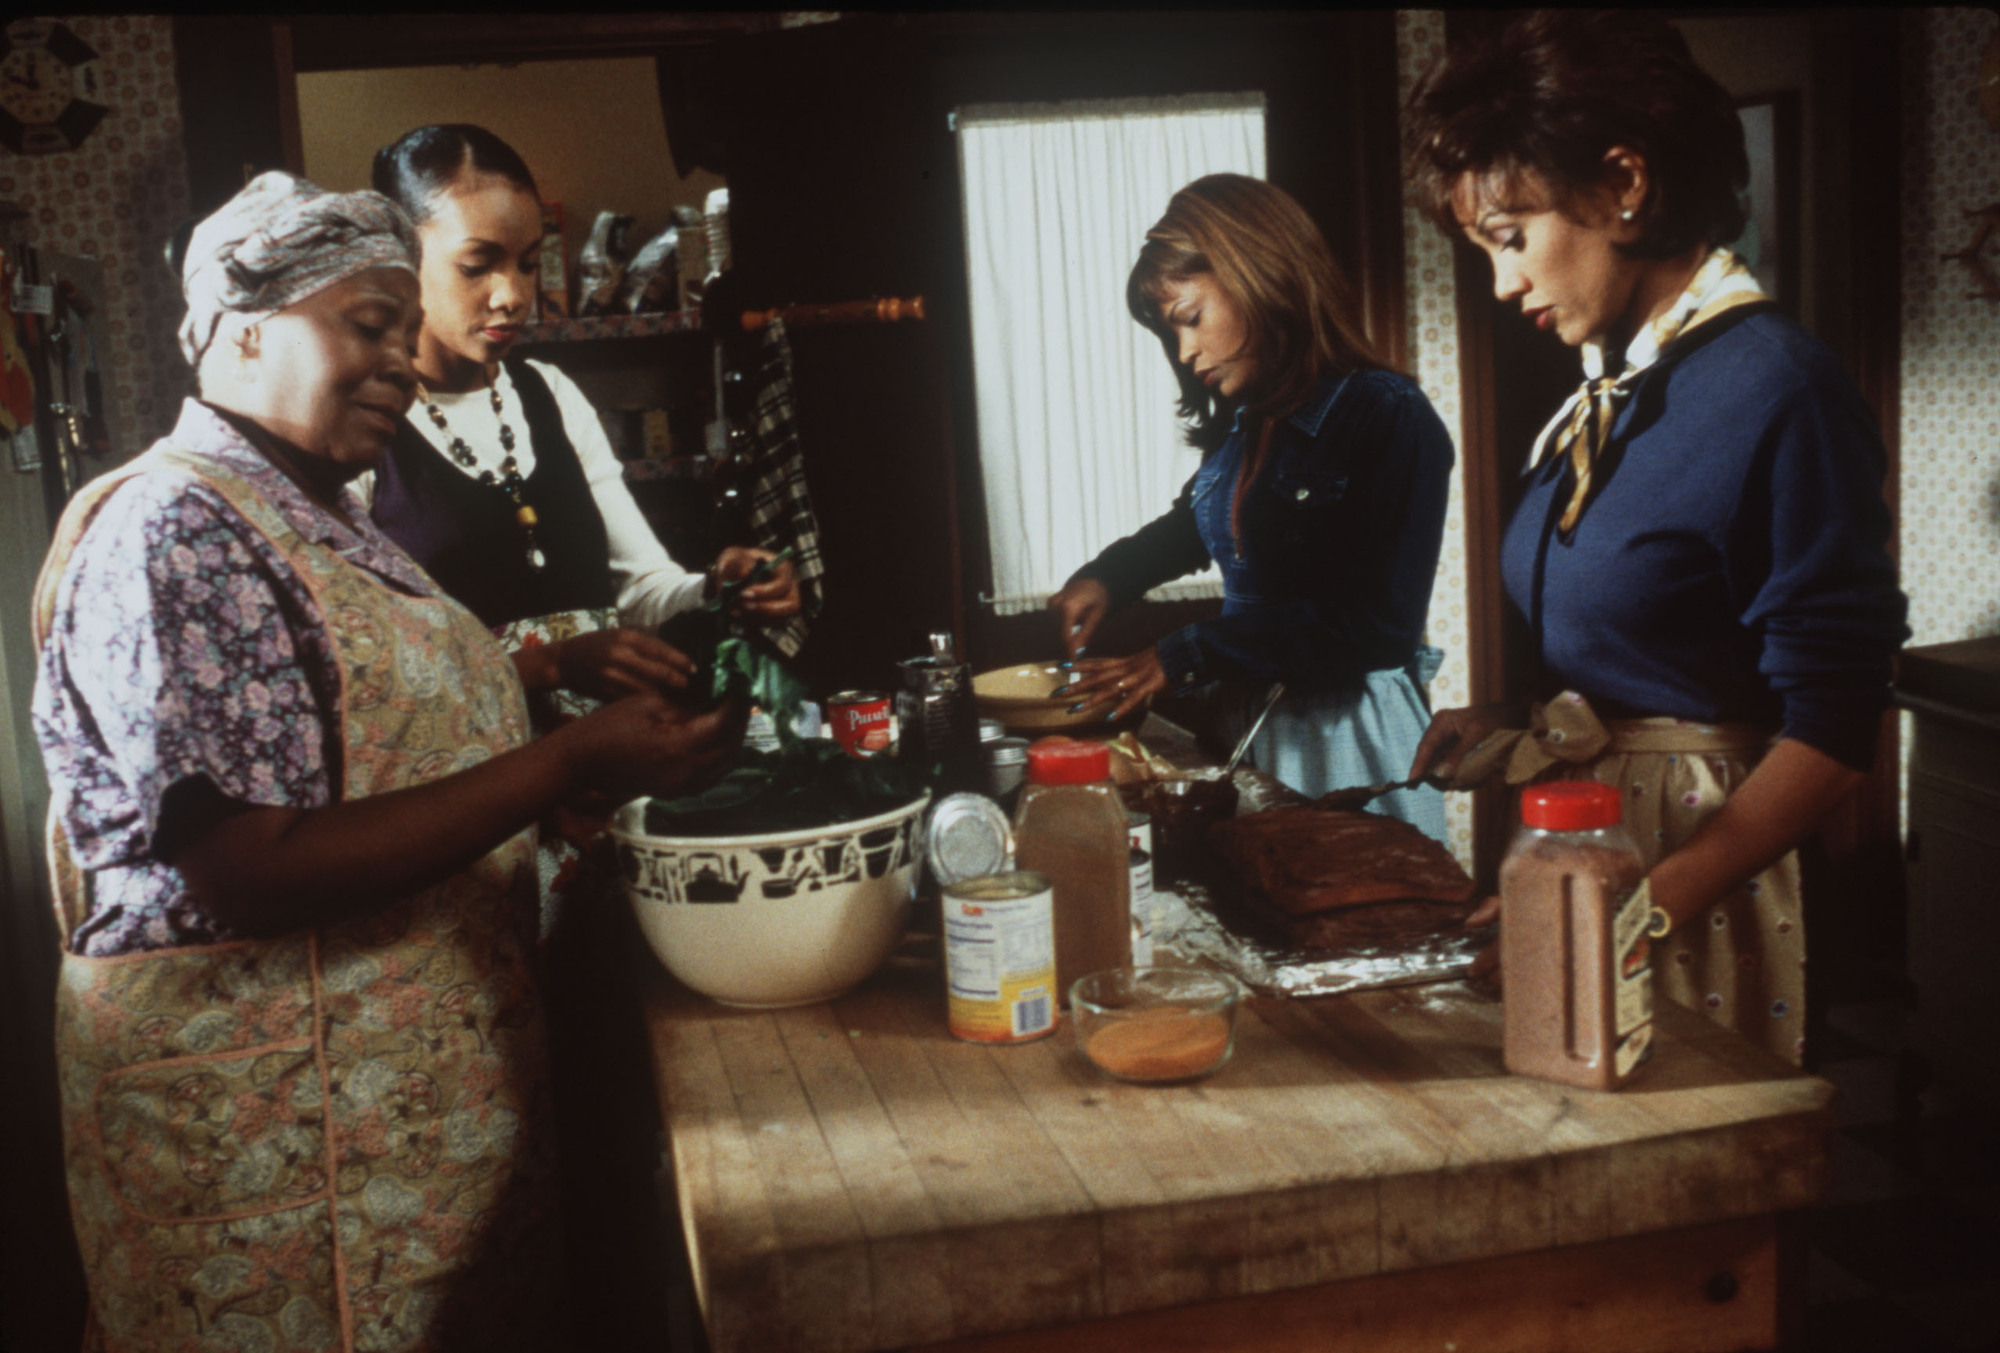 Irma P. Hall, left, as the family matriarch helps her daughters played by Vivacia A. Fox, Nia Long and Vanessa L. Williams, prepare for the weekly family dinner in 'Soul Food.'